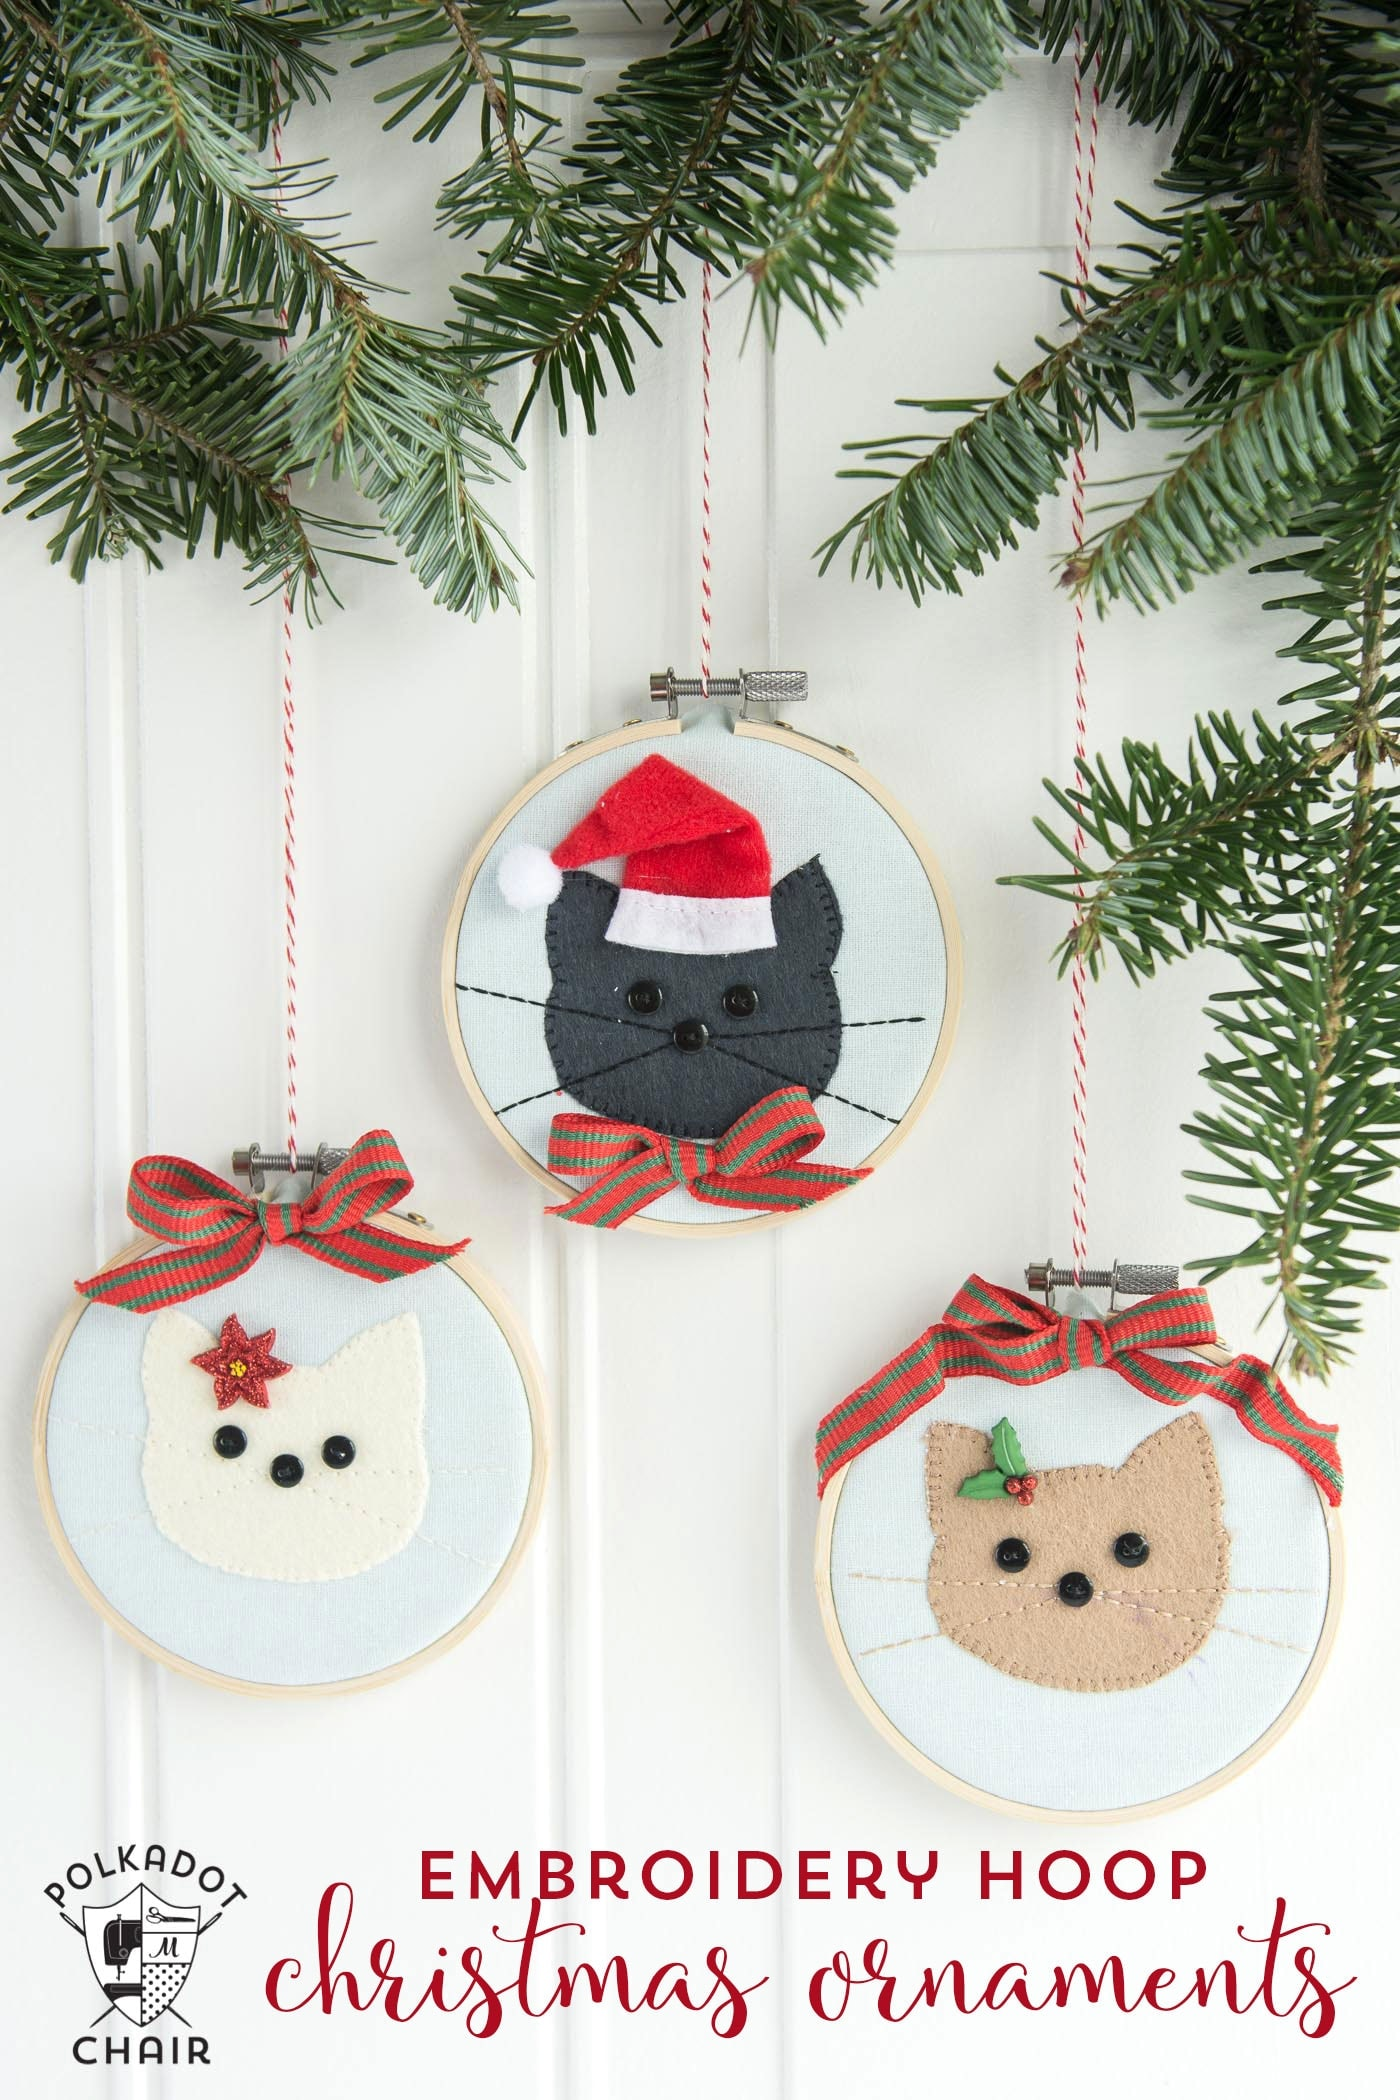 Polka dot christmas ornaments - Diy Cat Embroidery Hoop Christmas Ornaments With Instructions And Free Sewing Pattern On Polkadotchair Com